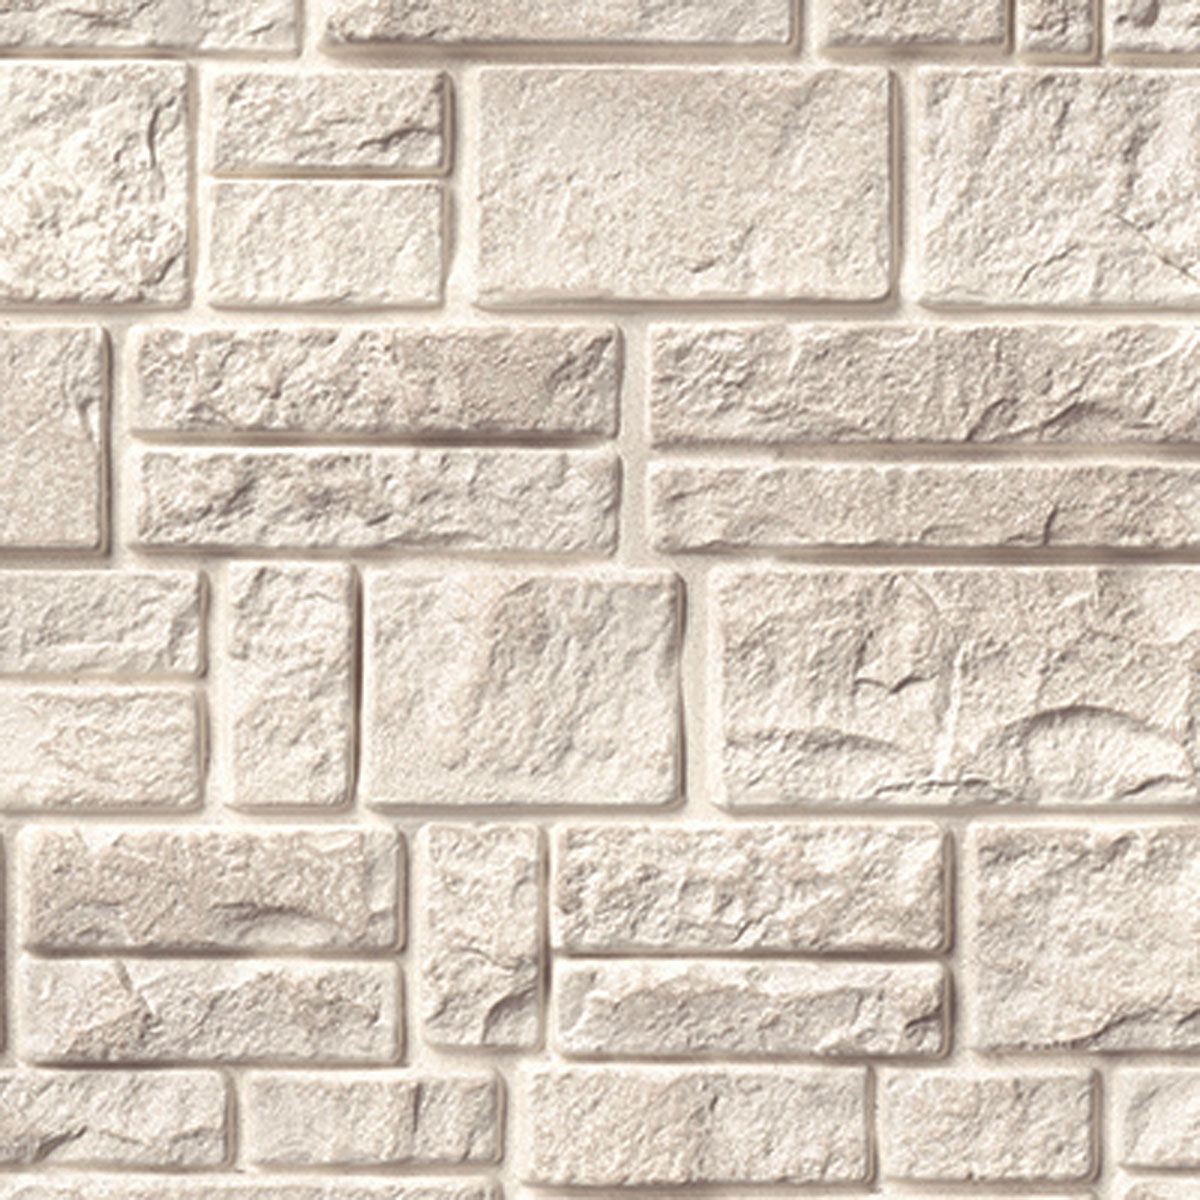 The Foundry 1702850 10 Inch W X 62 Inch L Vinyl Stone Panels